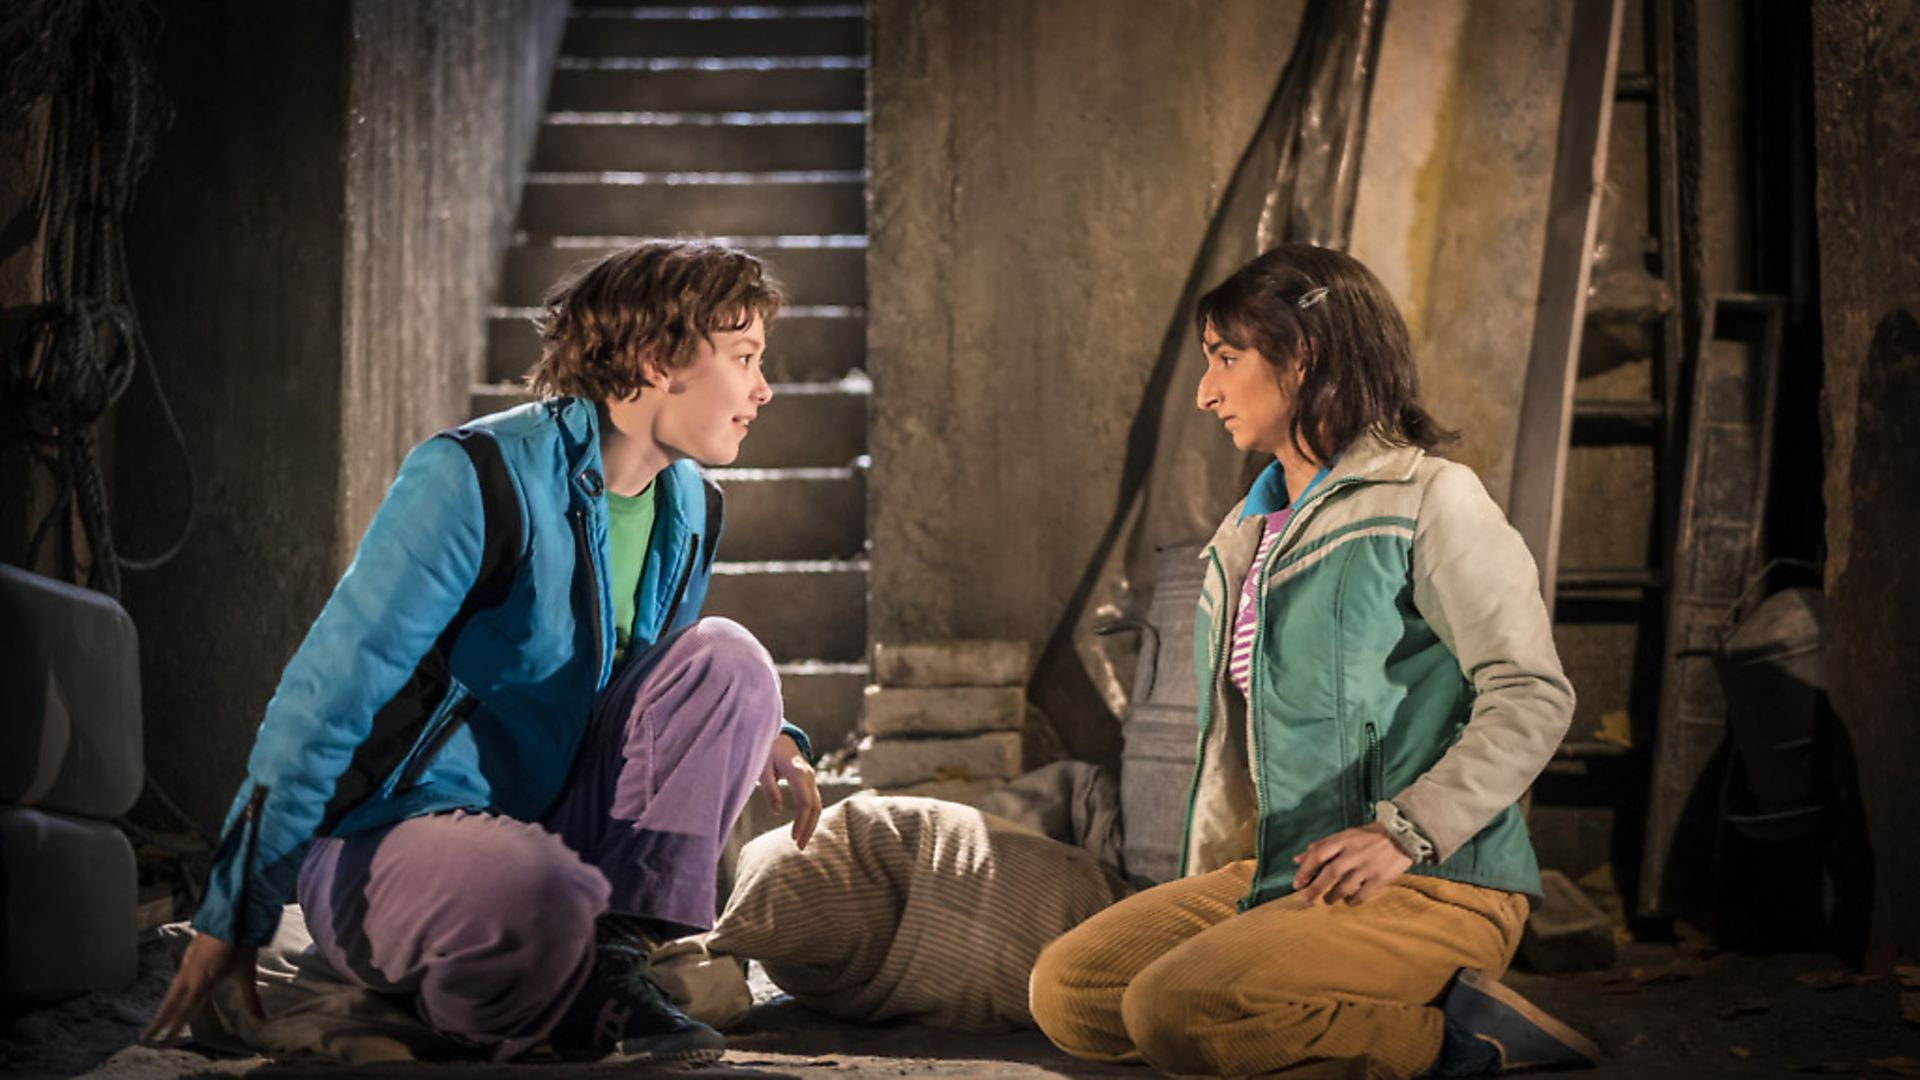 TOP GIRLS by Churchill,            , Writer - Caryl Churchill,  Director - Lyndsey Turner, Set Designer - Ian MacNeill, Costume Designer - Merle Hensel, Lighting - Jack Knowles, The National Theatre, 2019, Credit: Johan Persson/ - Credit: Archant